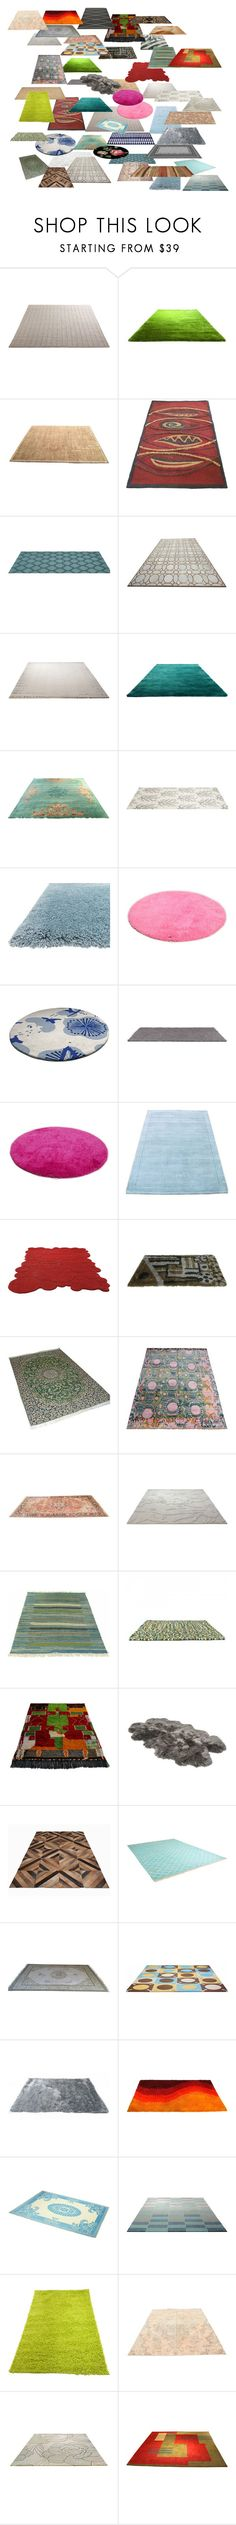 """Rugs with Perspective 447"" by mysfytdesigns ❤ liked on Polyvore featuring interior, interiors, interior design, home, home decor, interior decorating, Matta, ESPRIT, Barbara Barry and INC International Concepts"